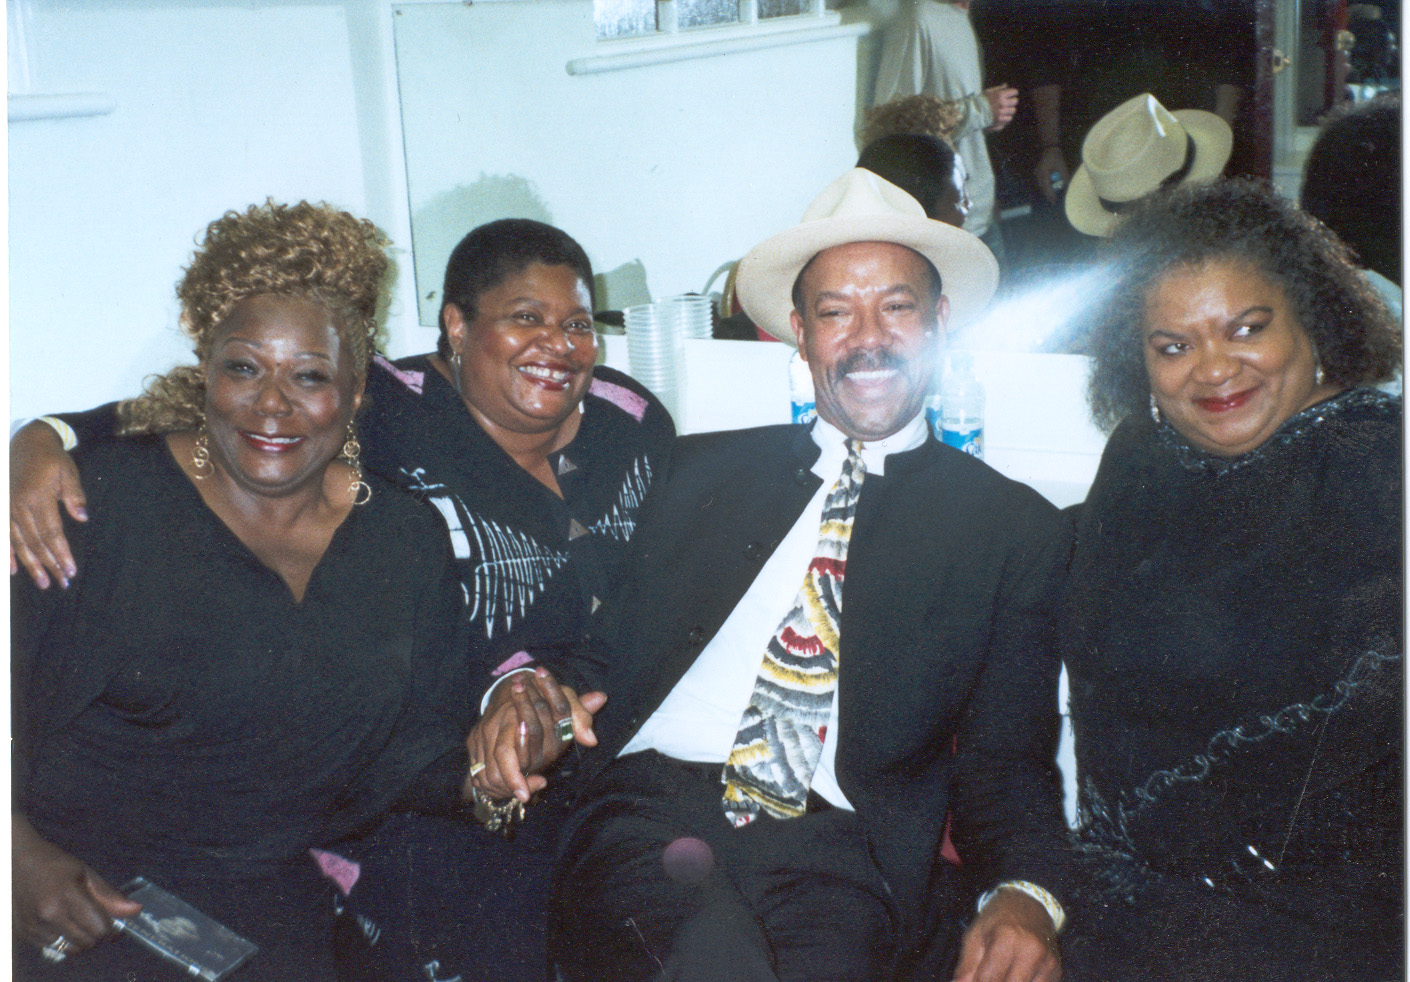 Michael with Zora Young, Deitra Farr and Grana Louise, Colne Blues Festival, UK (2007)